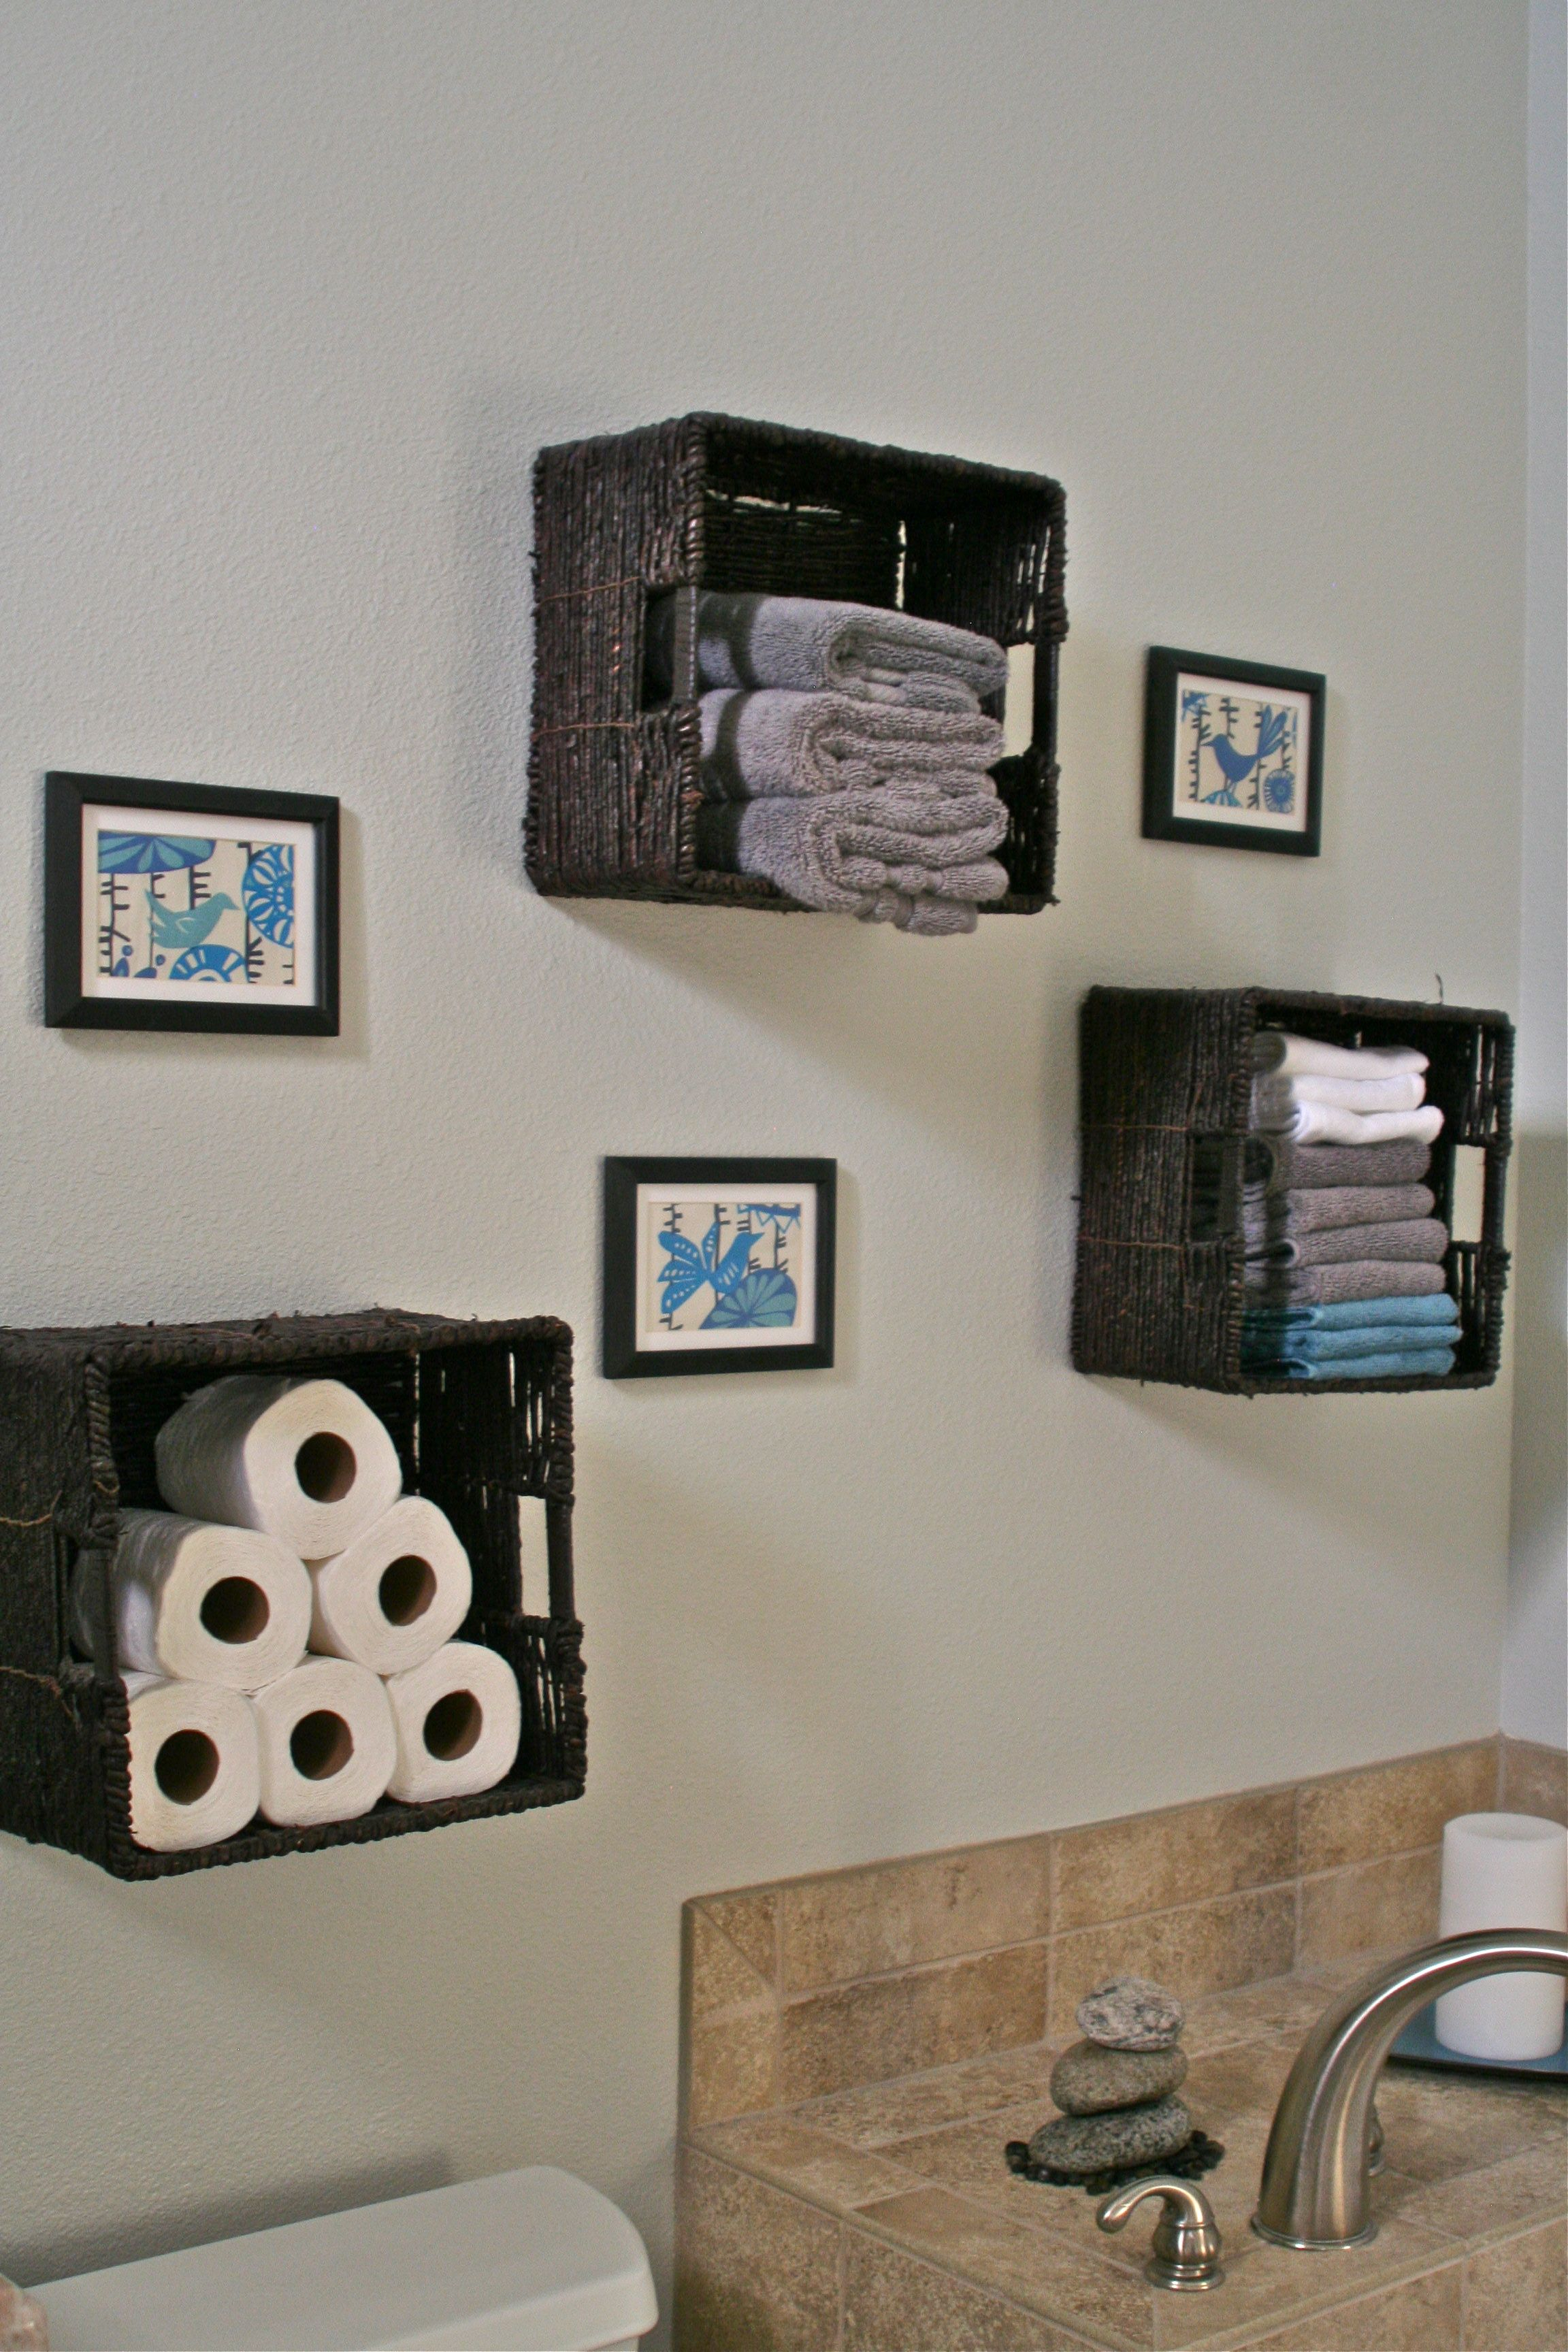 Bathroom Storage Baskets For Towels Toilet Paper Etc Love intended for measurements 2304 X 3456